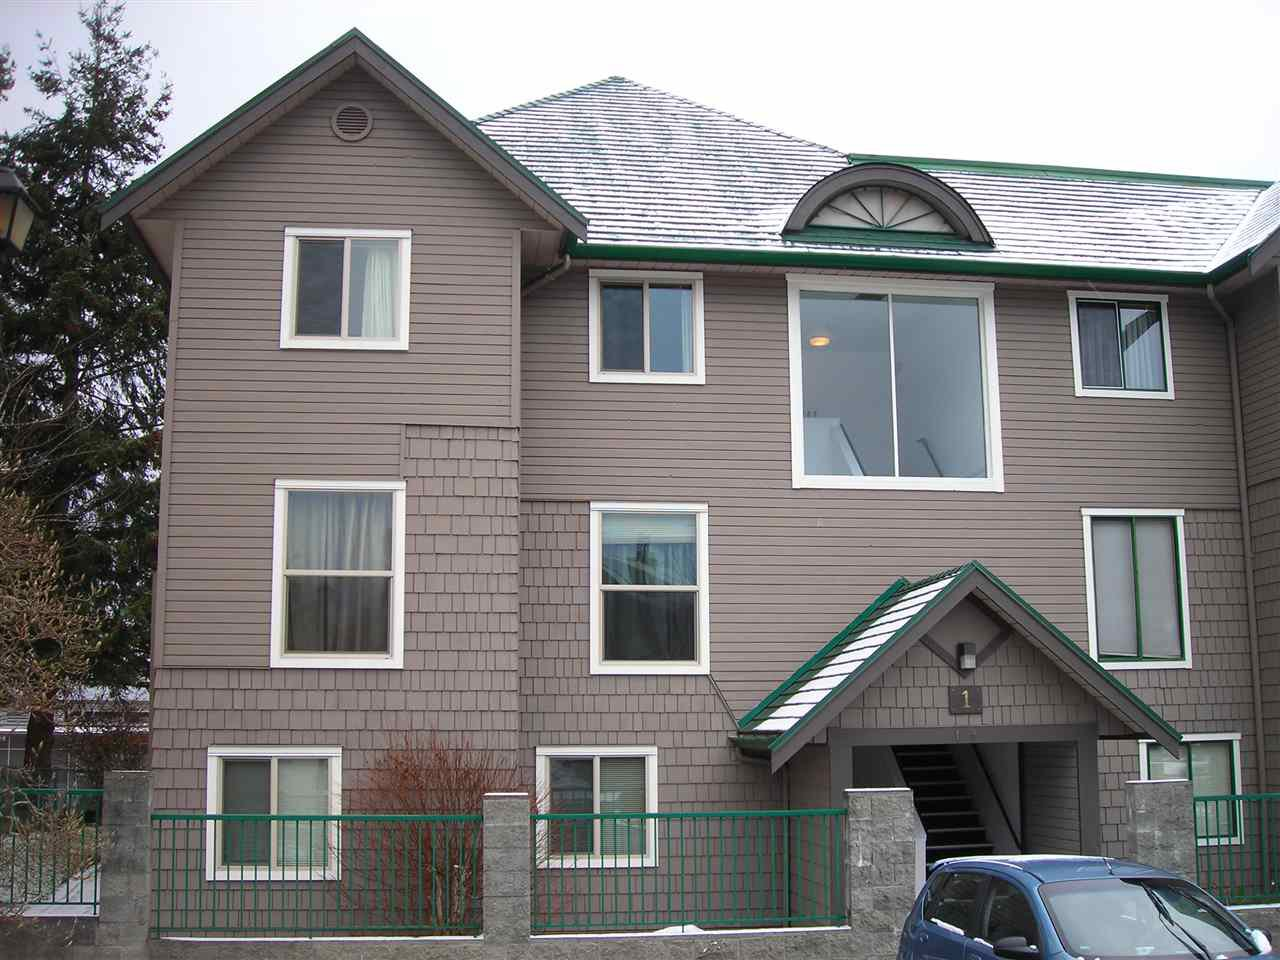 Main Photo: 1 622 FARNHAM Road in Gibsons: Gibsons & Area Condo for sale (Sunshine Coast)  : MLS®# R2128861